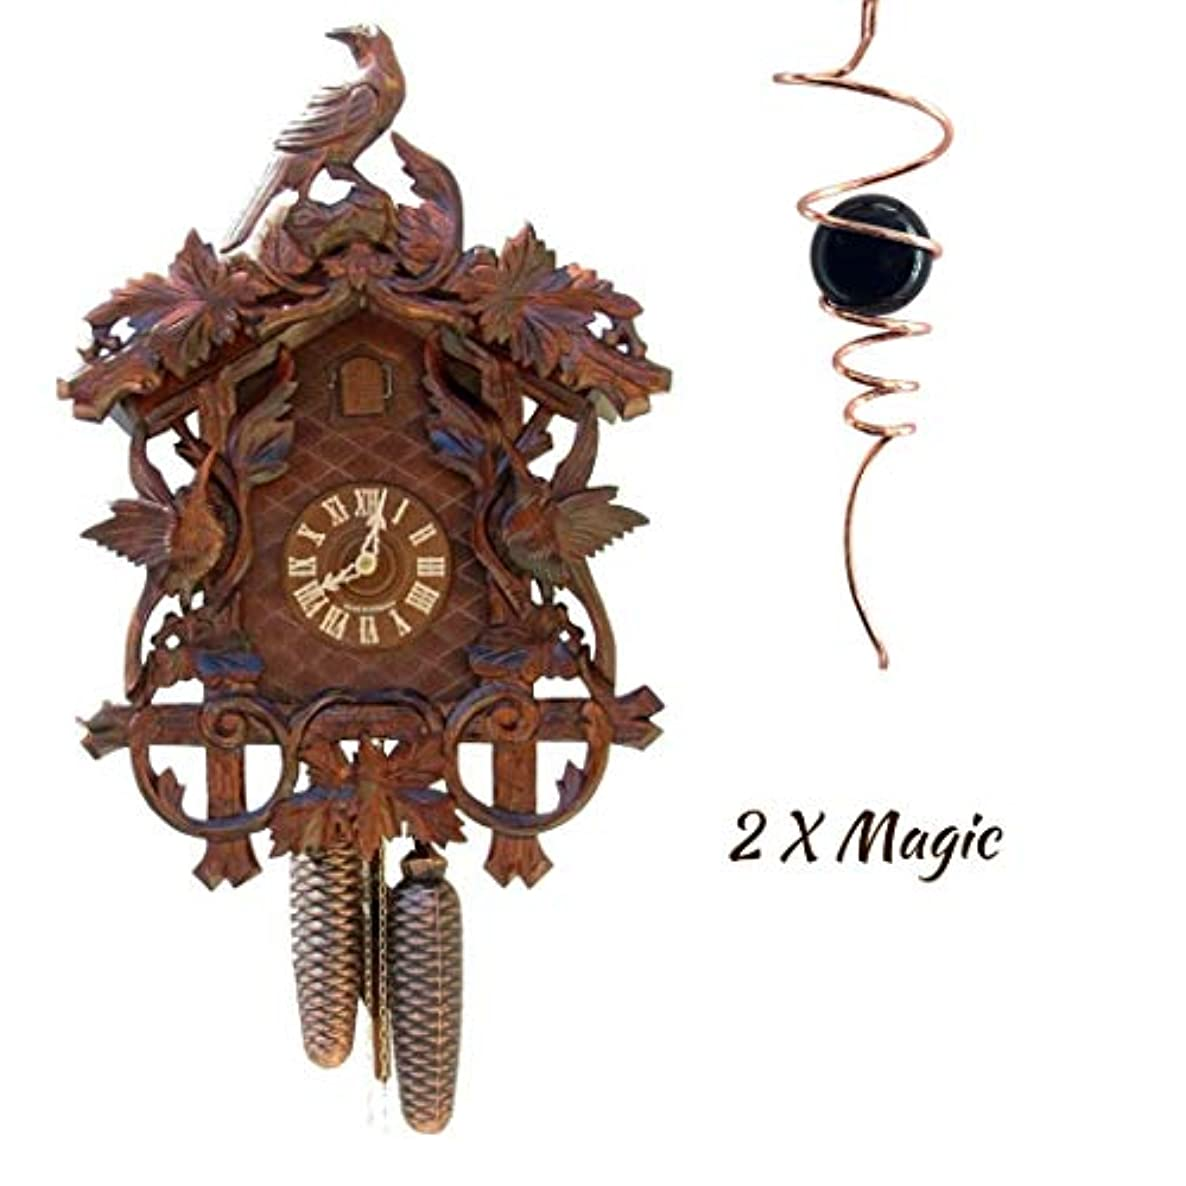 Qwirly 2 Item Decor Bundle: STERNREITER Hummingbirds Black Forest Mechanical Cuckoo Clock & Optical Illusion Spinner